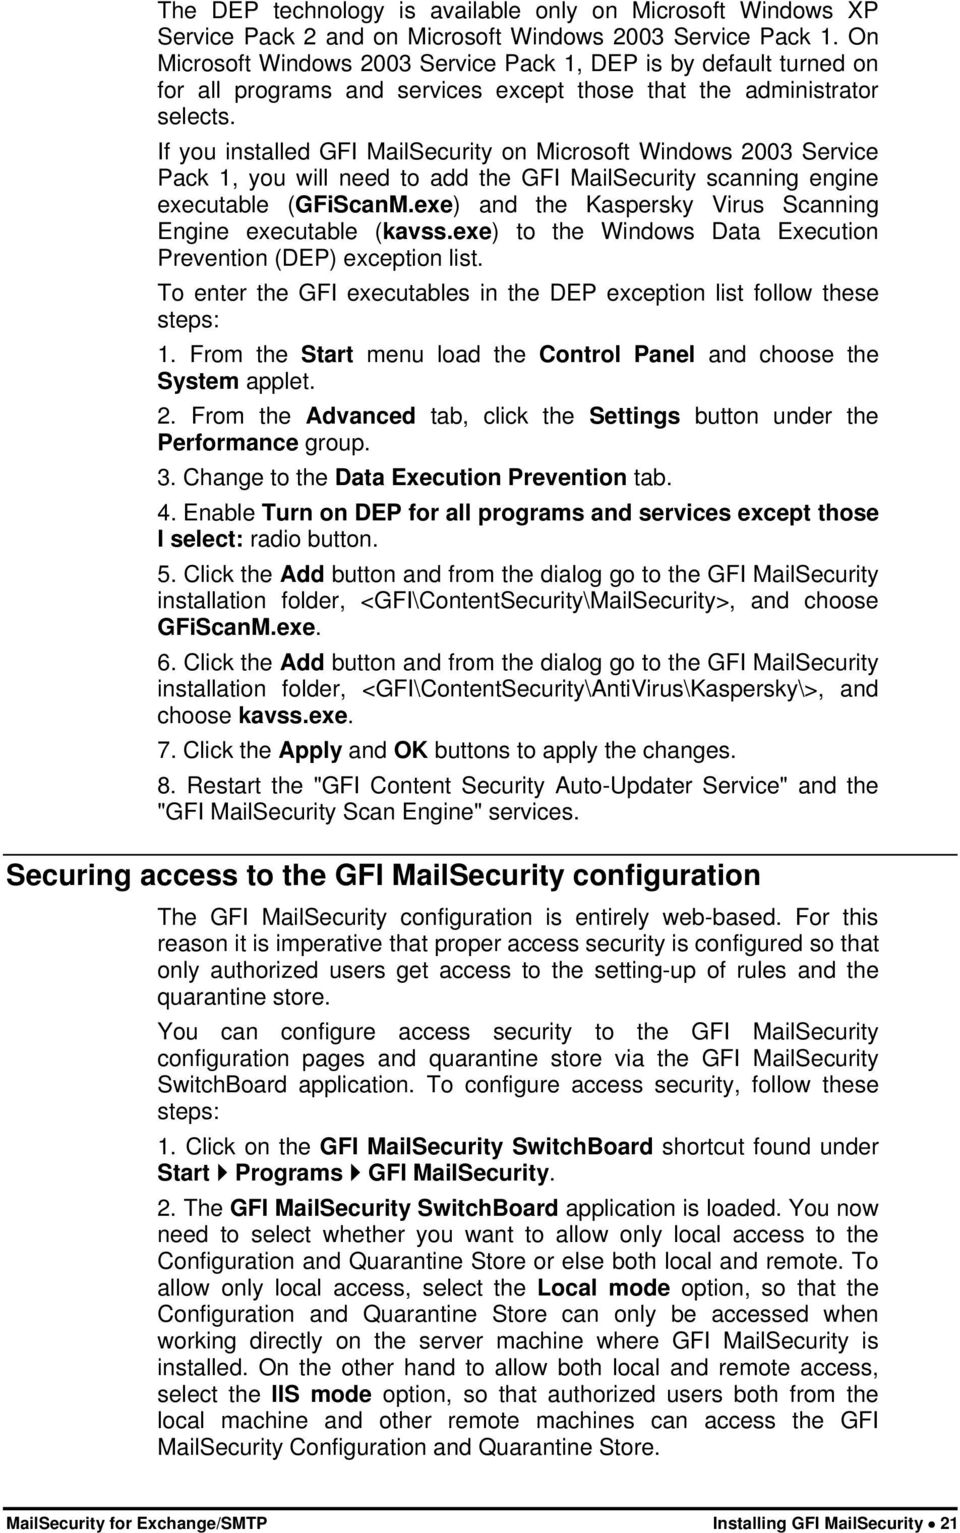 If you installed GFI MailSecurity on Microsoft Windows 2003 Service Pack 1, you will need to add the GFI MailSecurity scanning engine executable (GFiScanM.